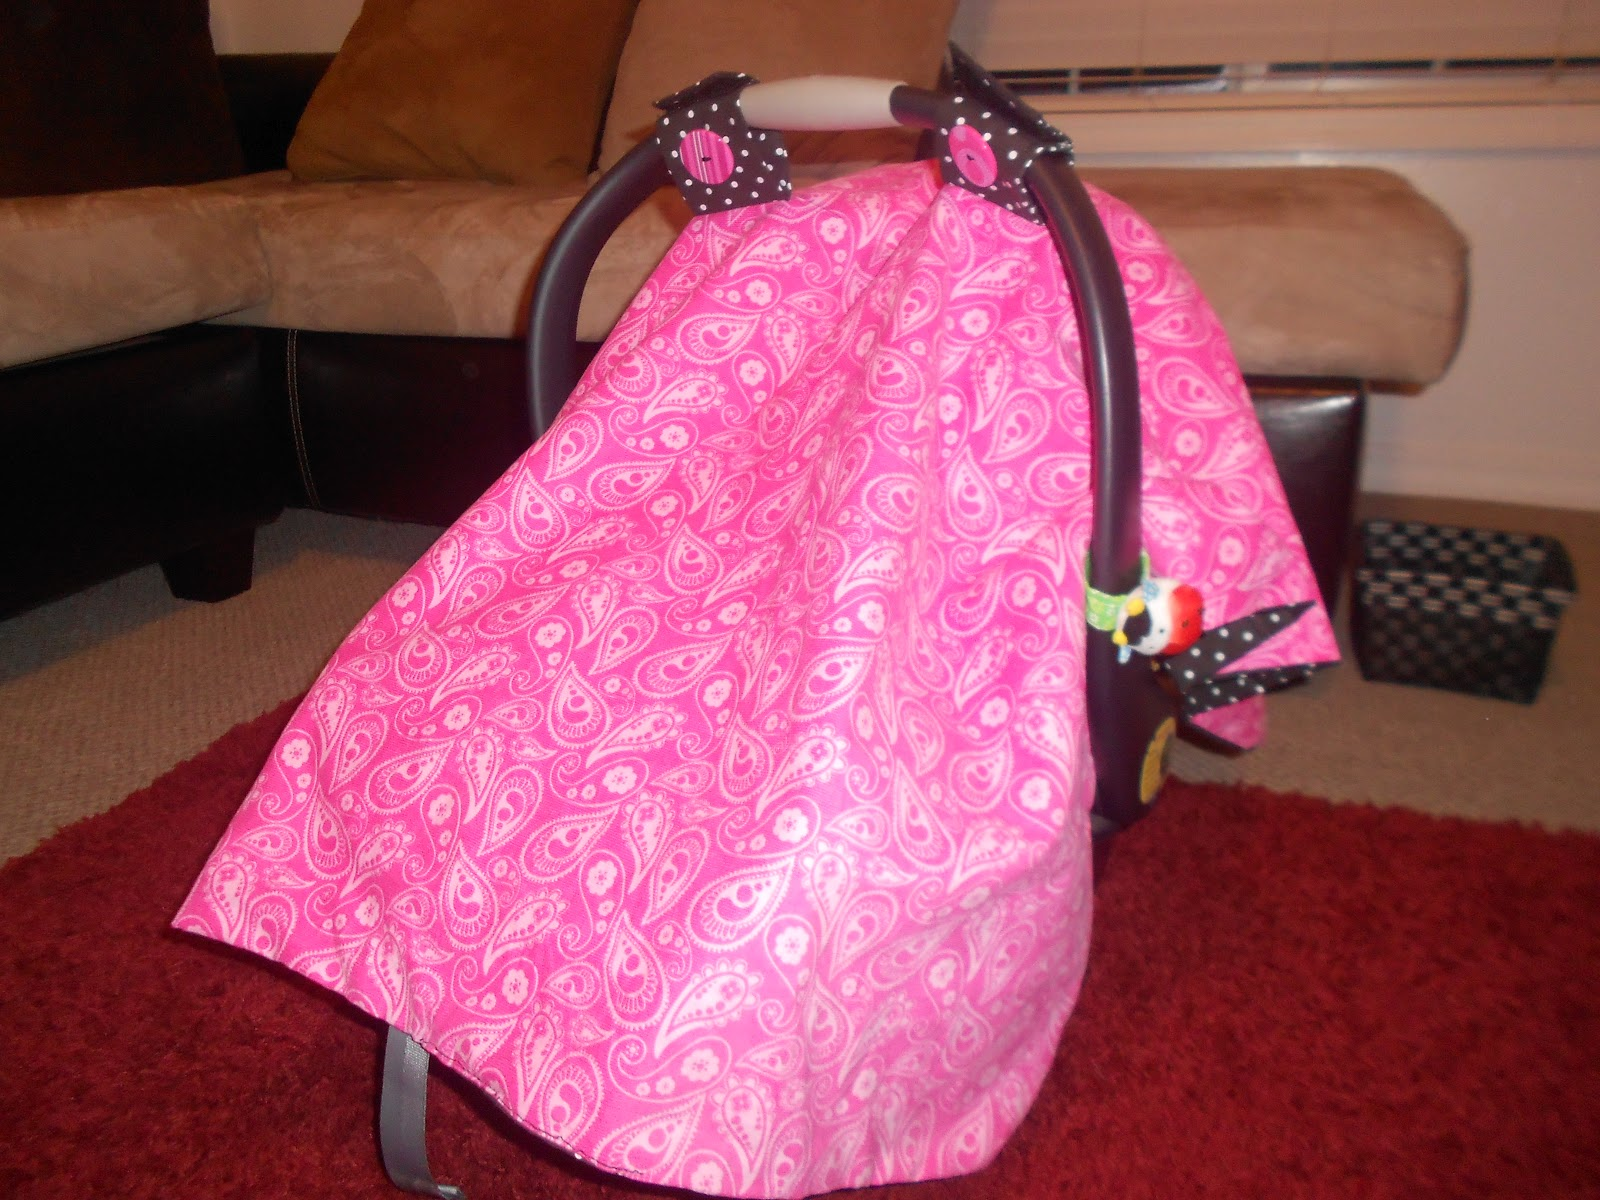 crafty mormon momma project 1 paisley polka dot car seat cover. Black Bedroom Furniture Sets. Home Design Ideas